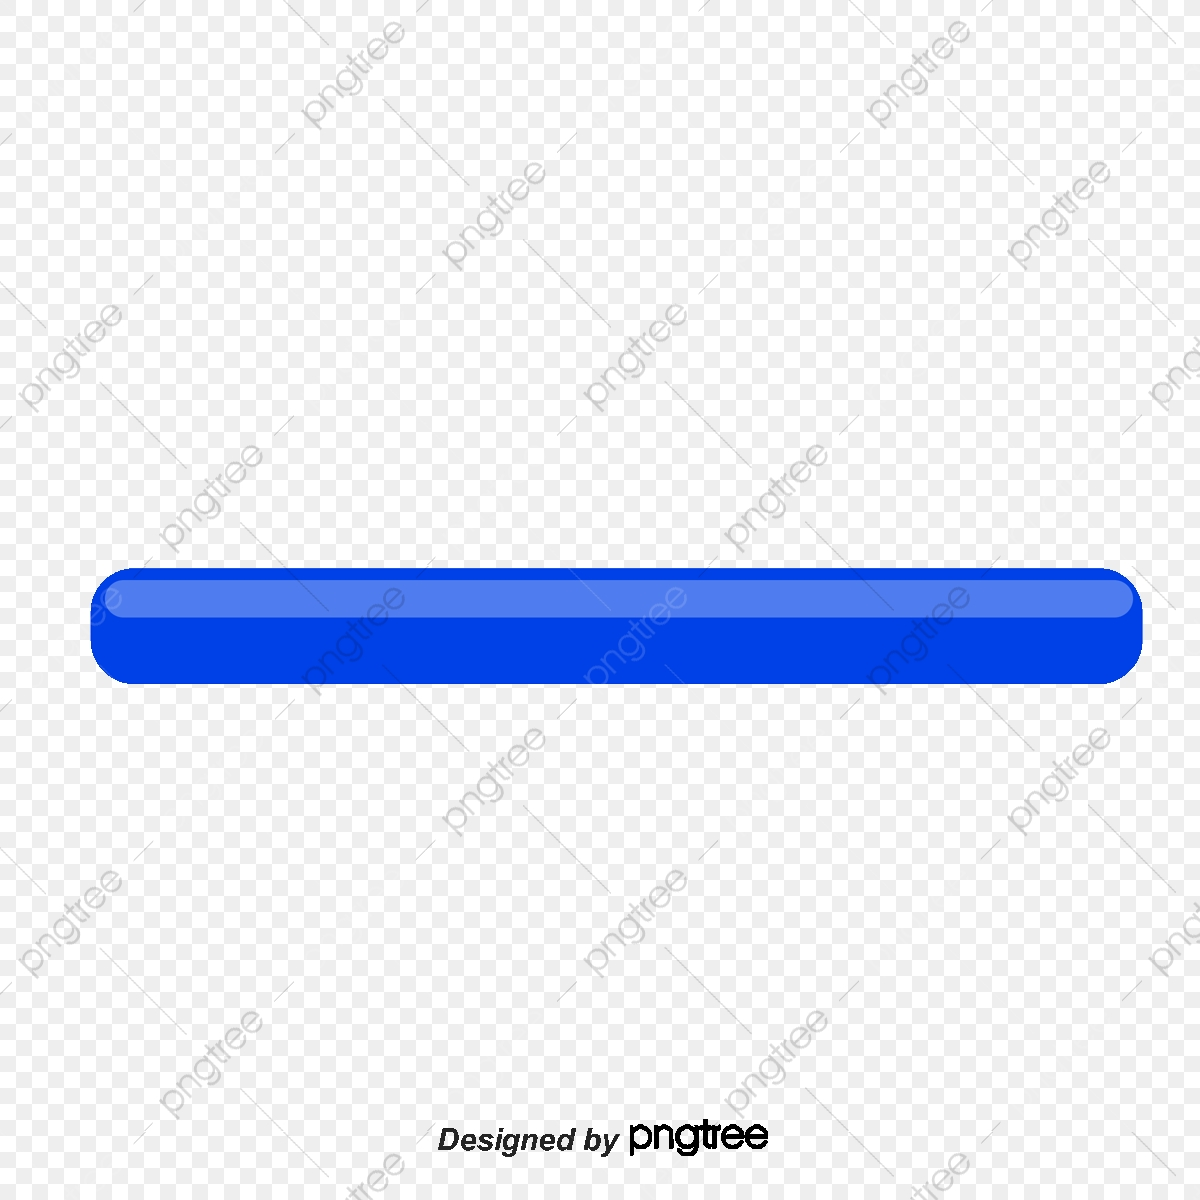 exit button png images vector and psd files free download on pngtree https pngtree com freepng crystal blue png exit button 1910371 html